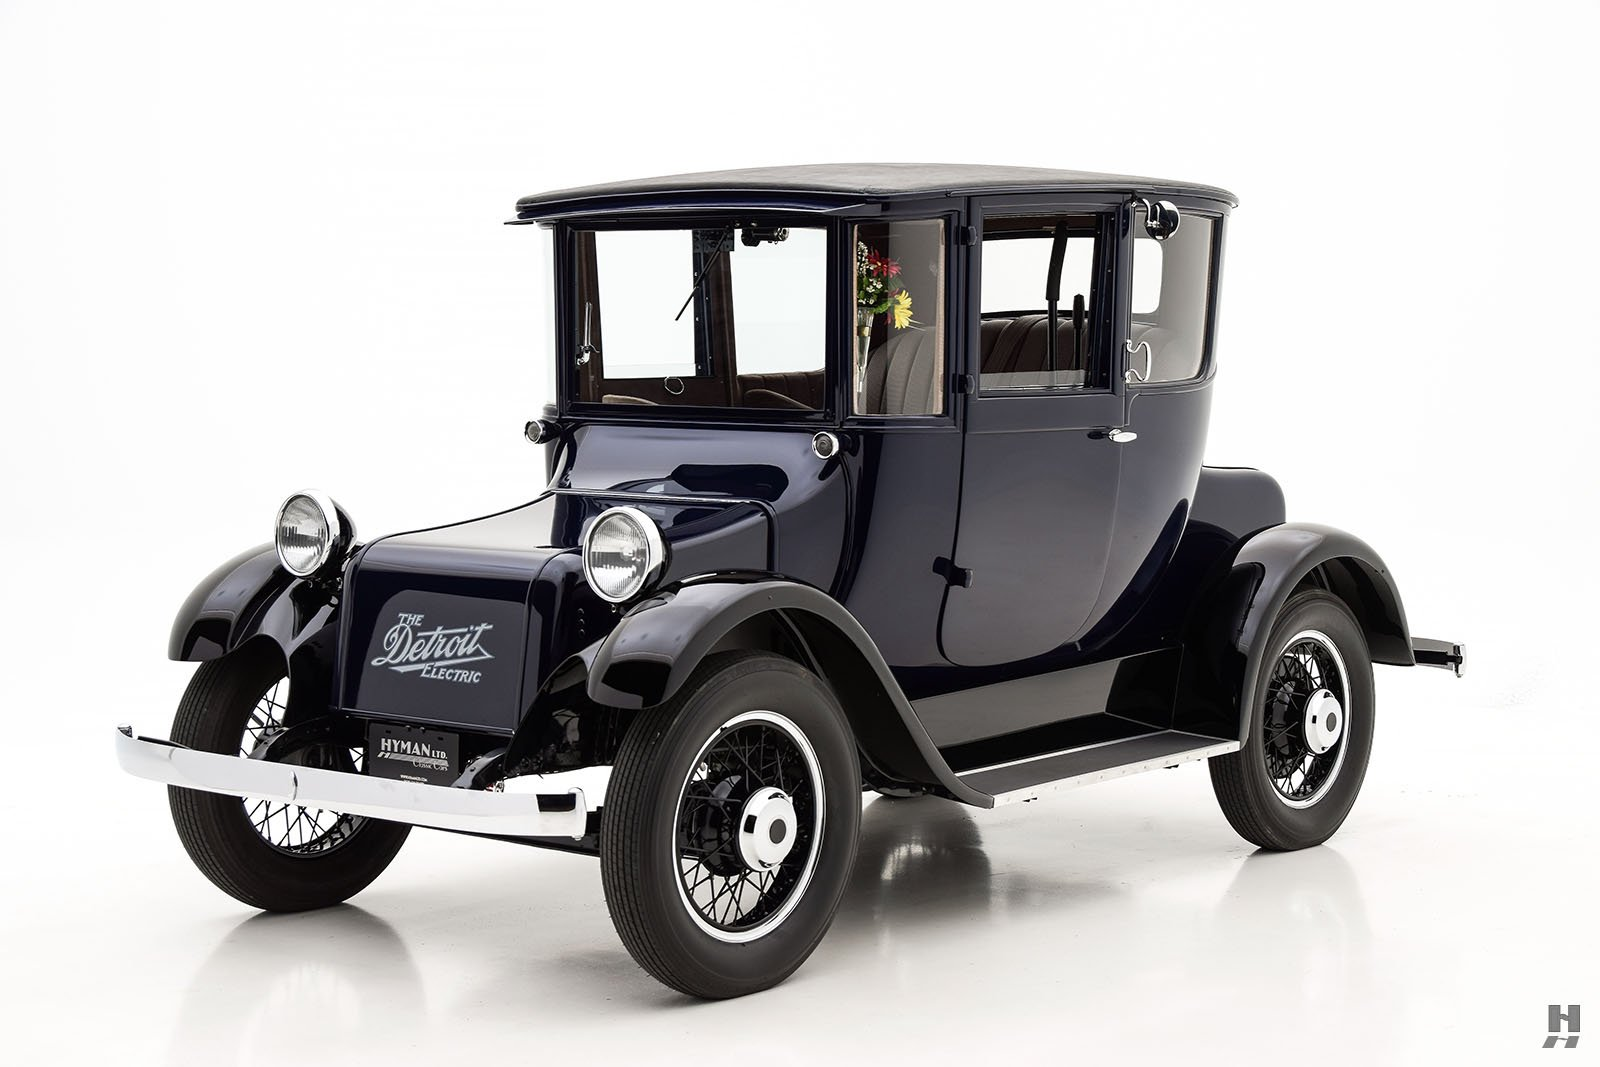 1931 Detroit Electric Model 97 Coupe For Sale | Classic Cars | Hyman LTD